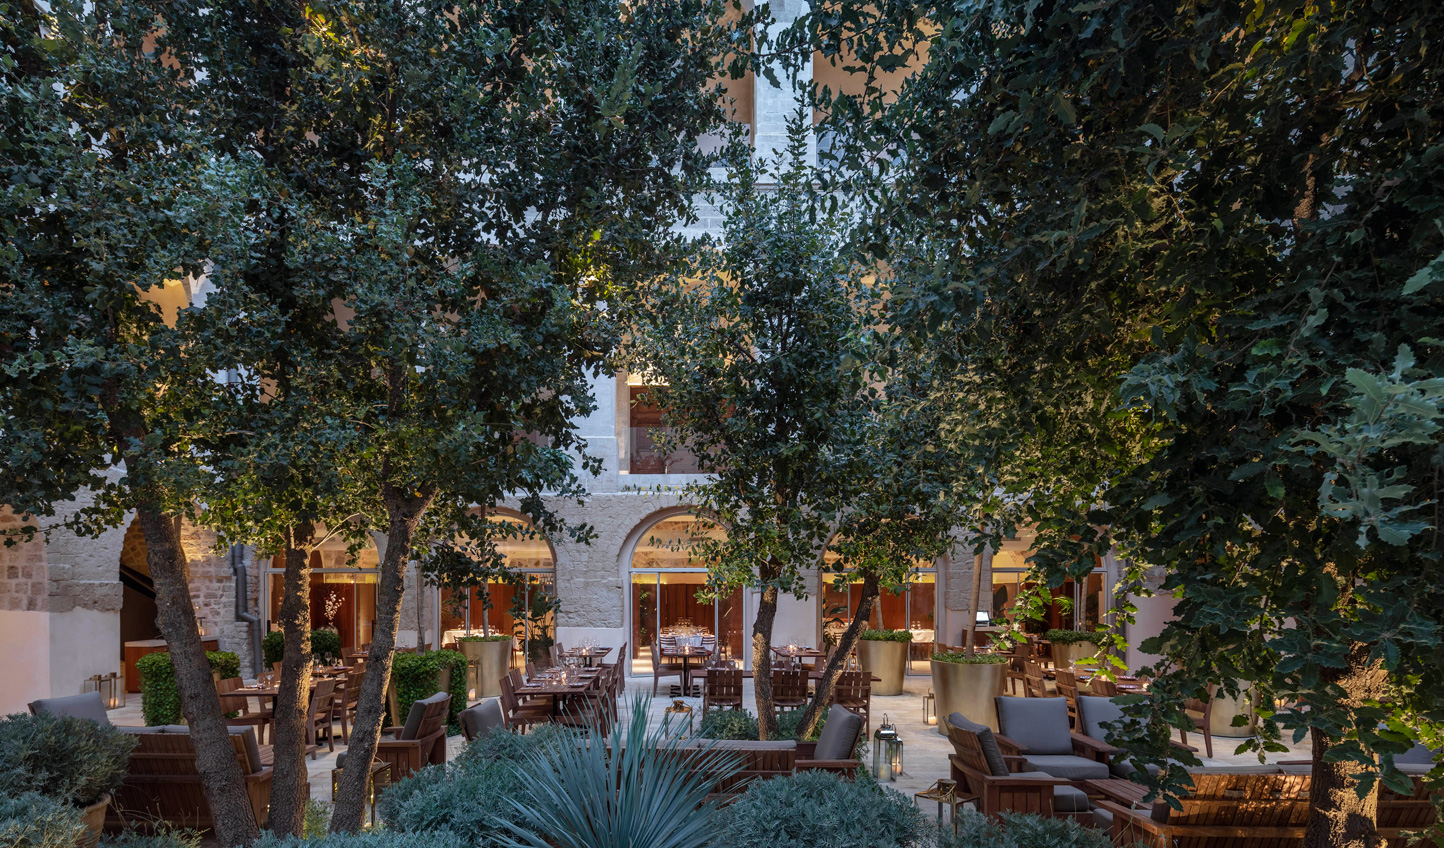 Dine out in the courtyard at Italian Don Camillo